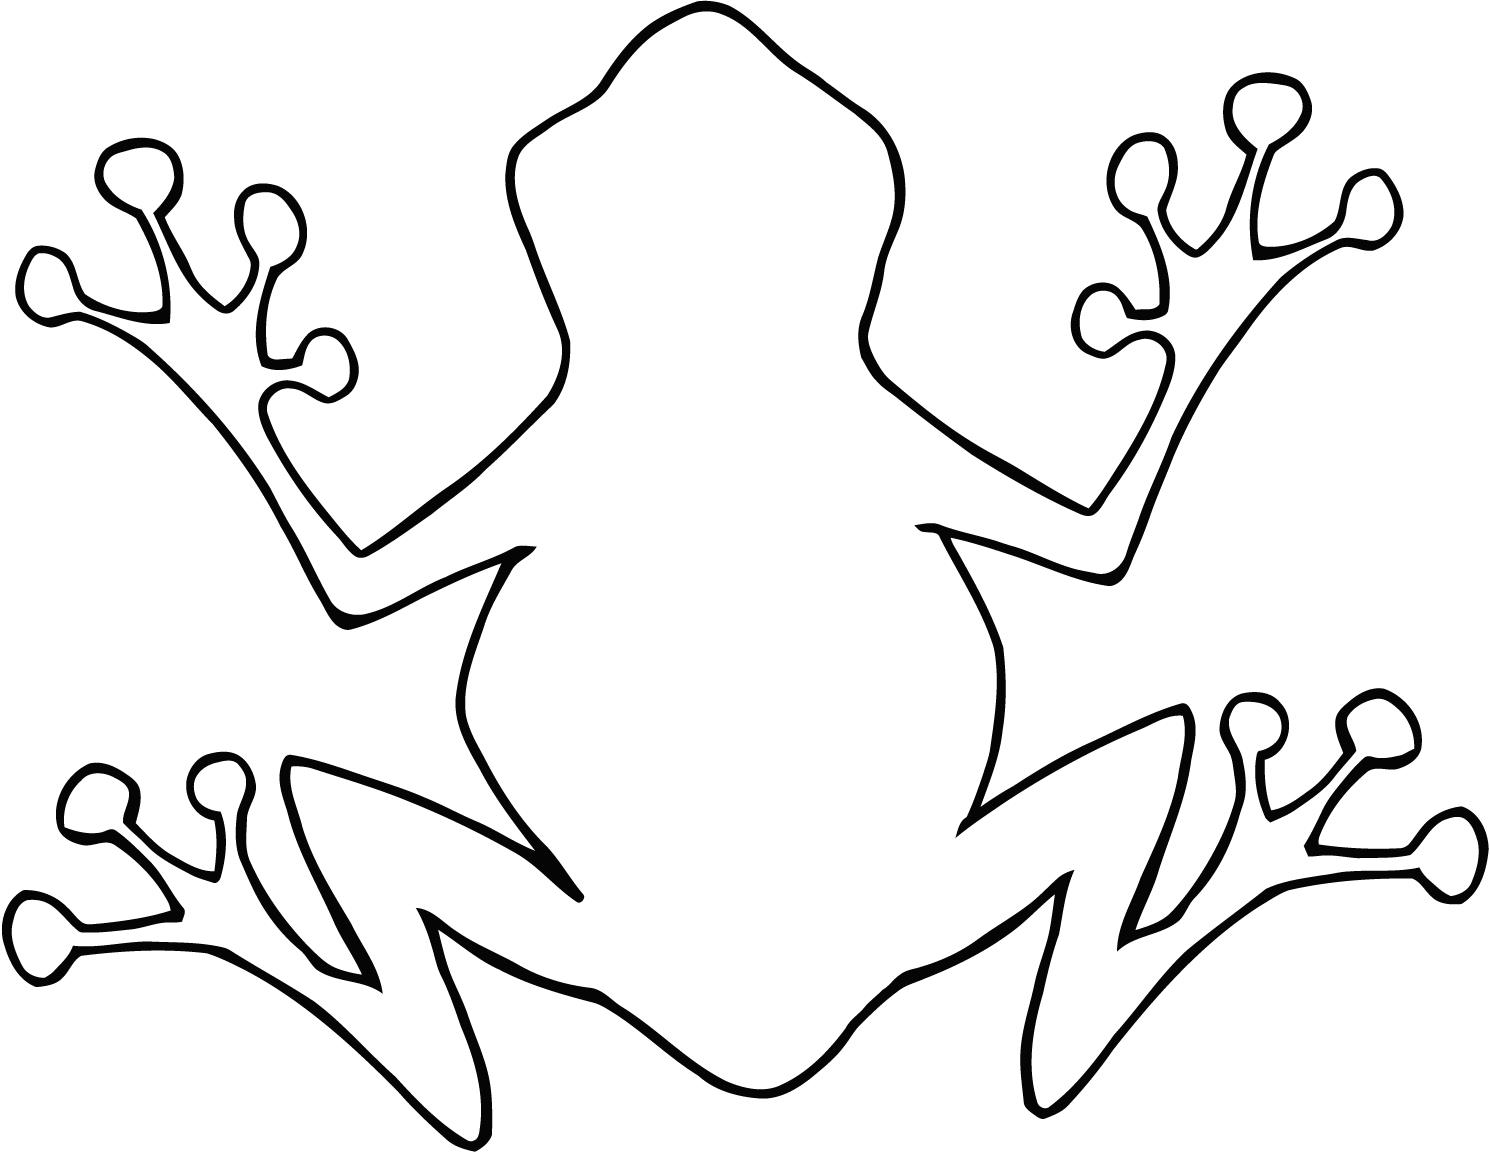 Line Drawing Frog : Tree frog outline clipart panda free images